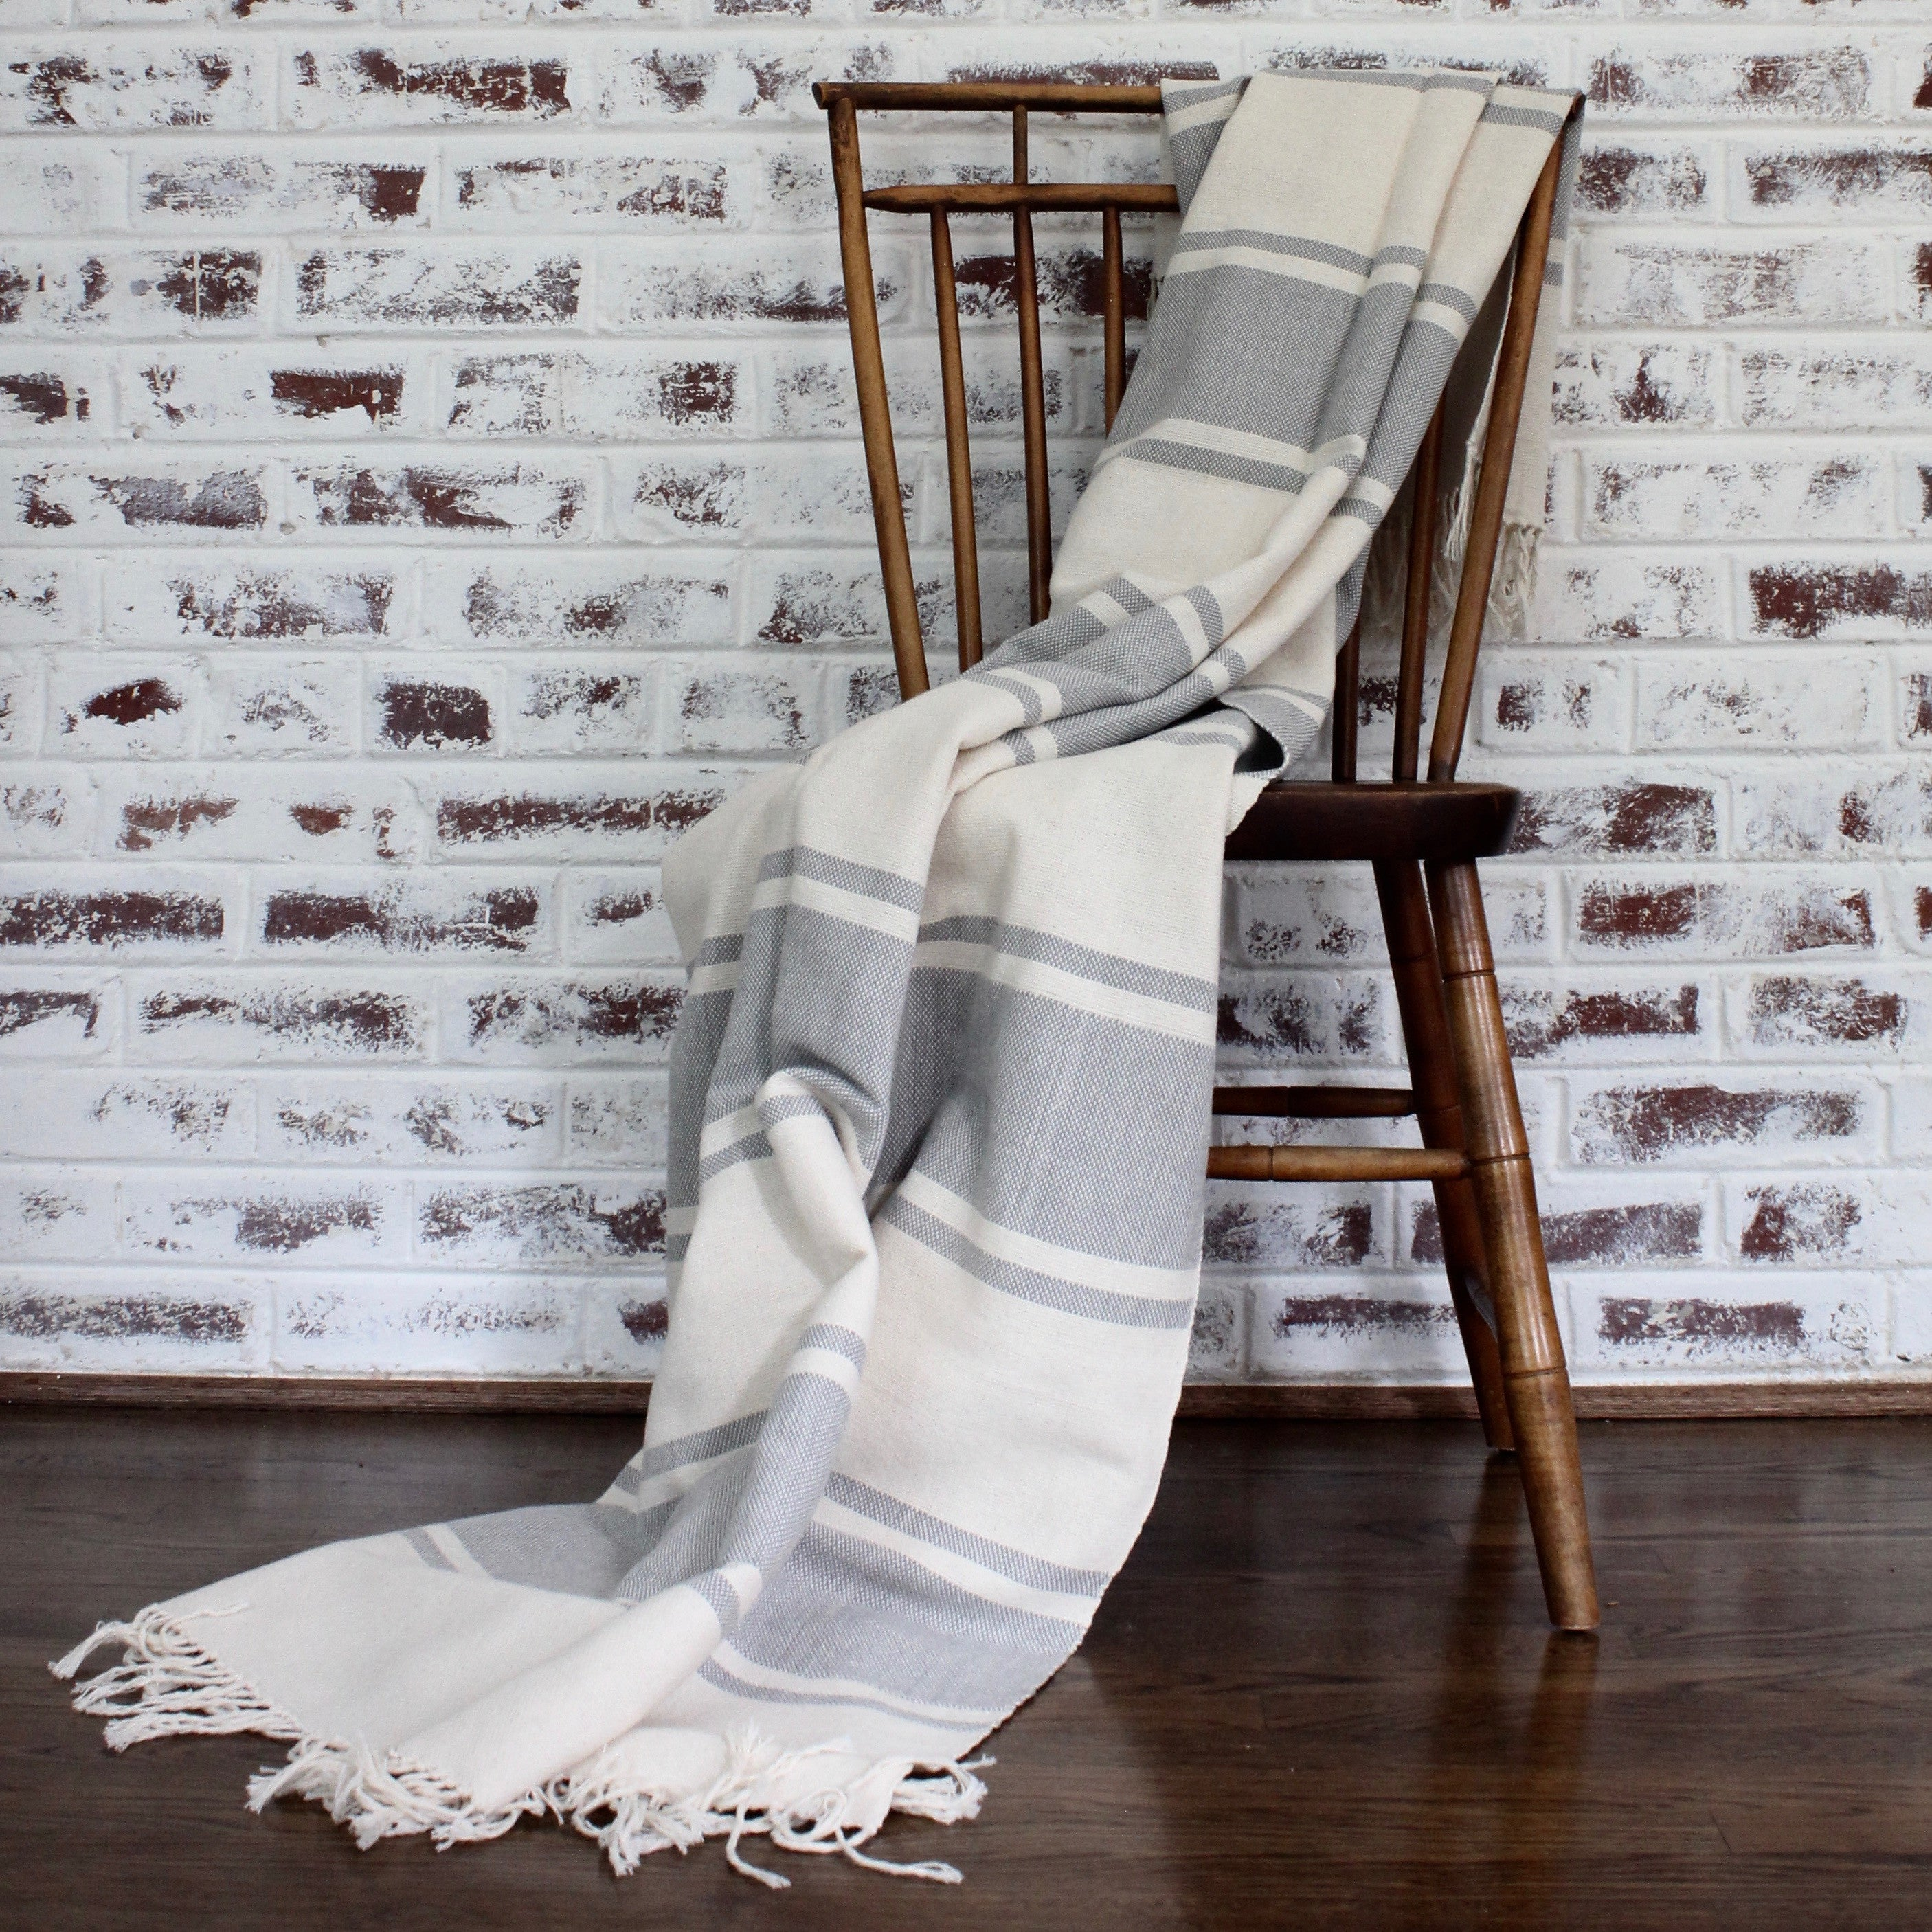 handwoven cotton AUDAZ blanket by Living Threads Co. artisans in grey